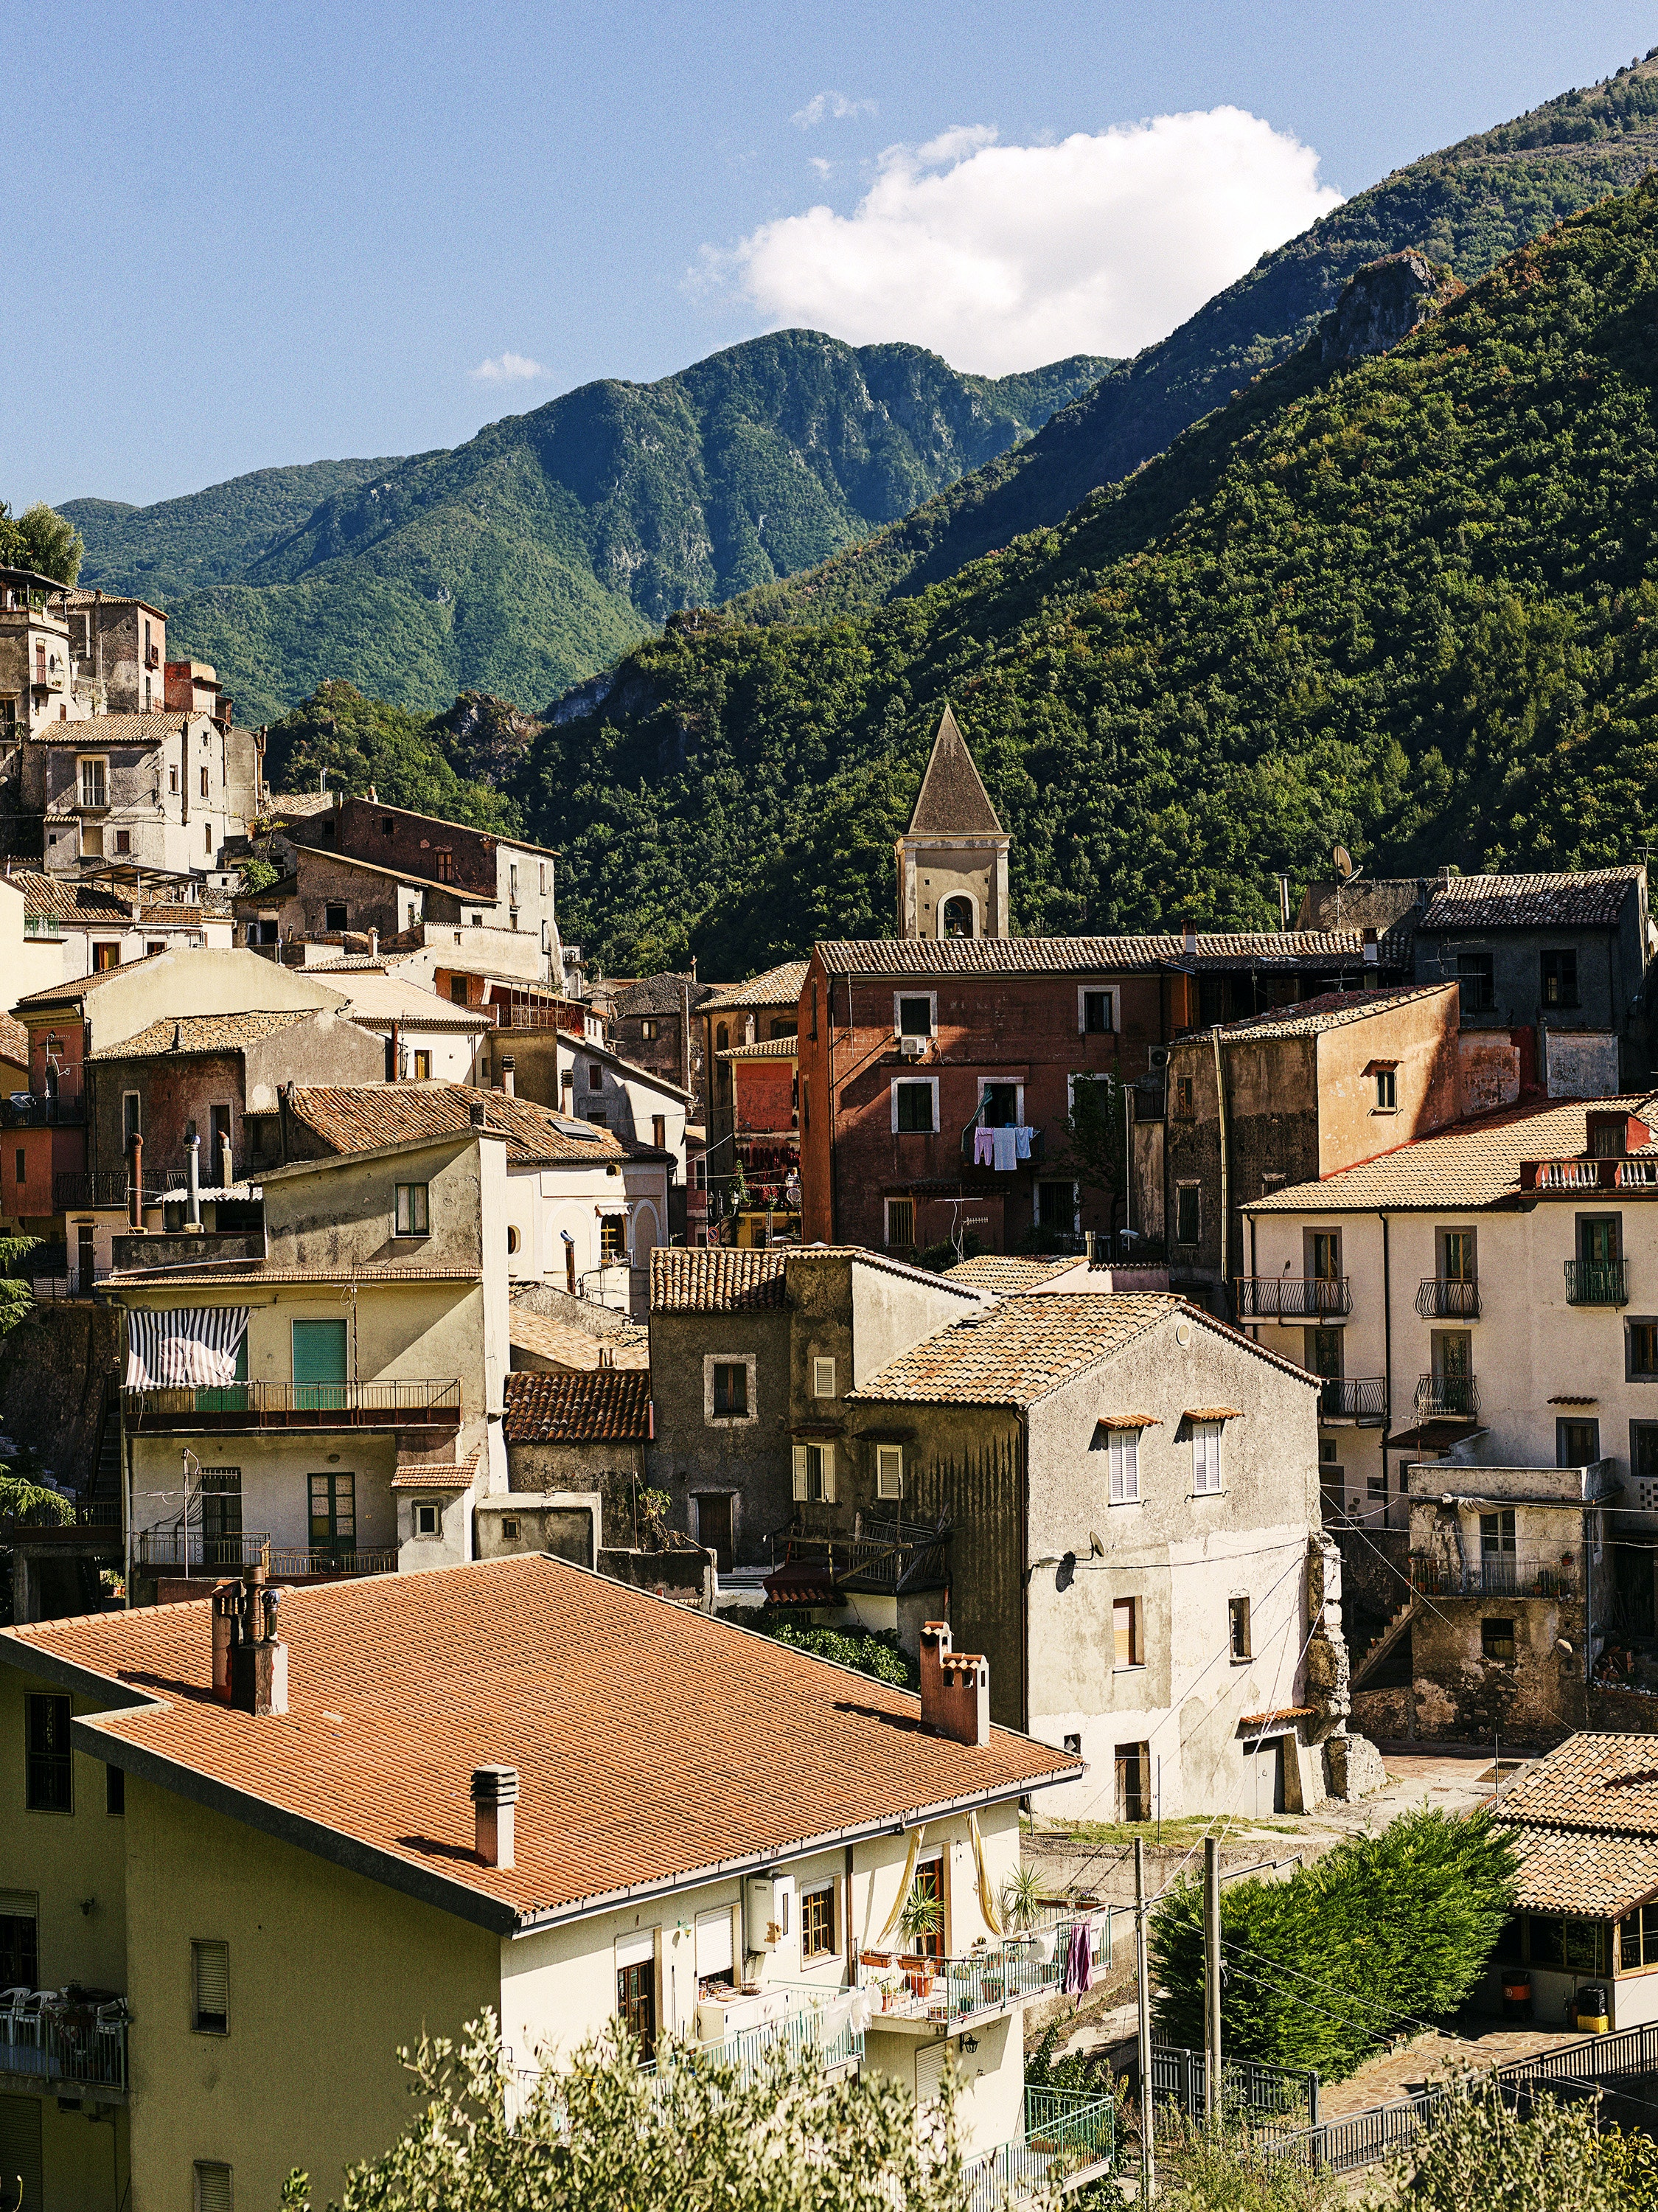 In Calabria's Cosenza province, the medieval town of Orsomarzo lies within the boundaries of Pollino National Park.